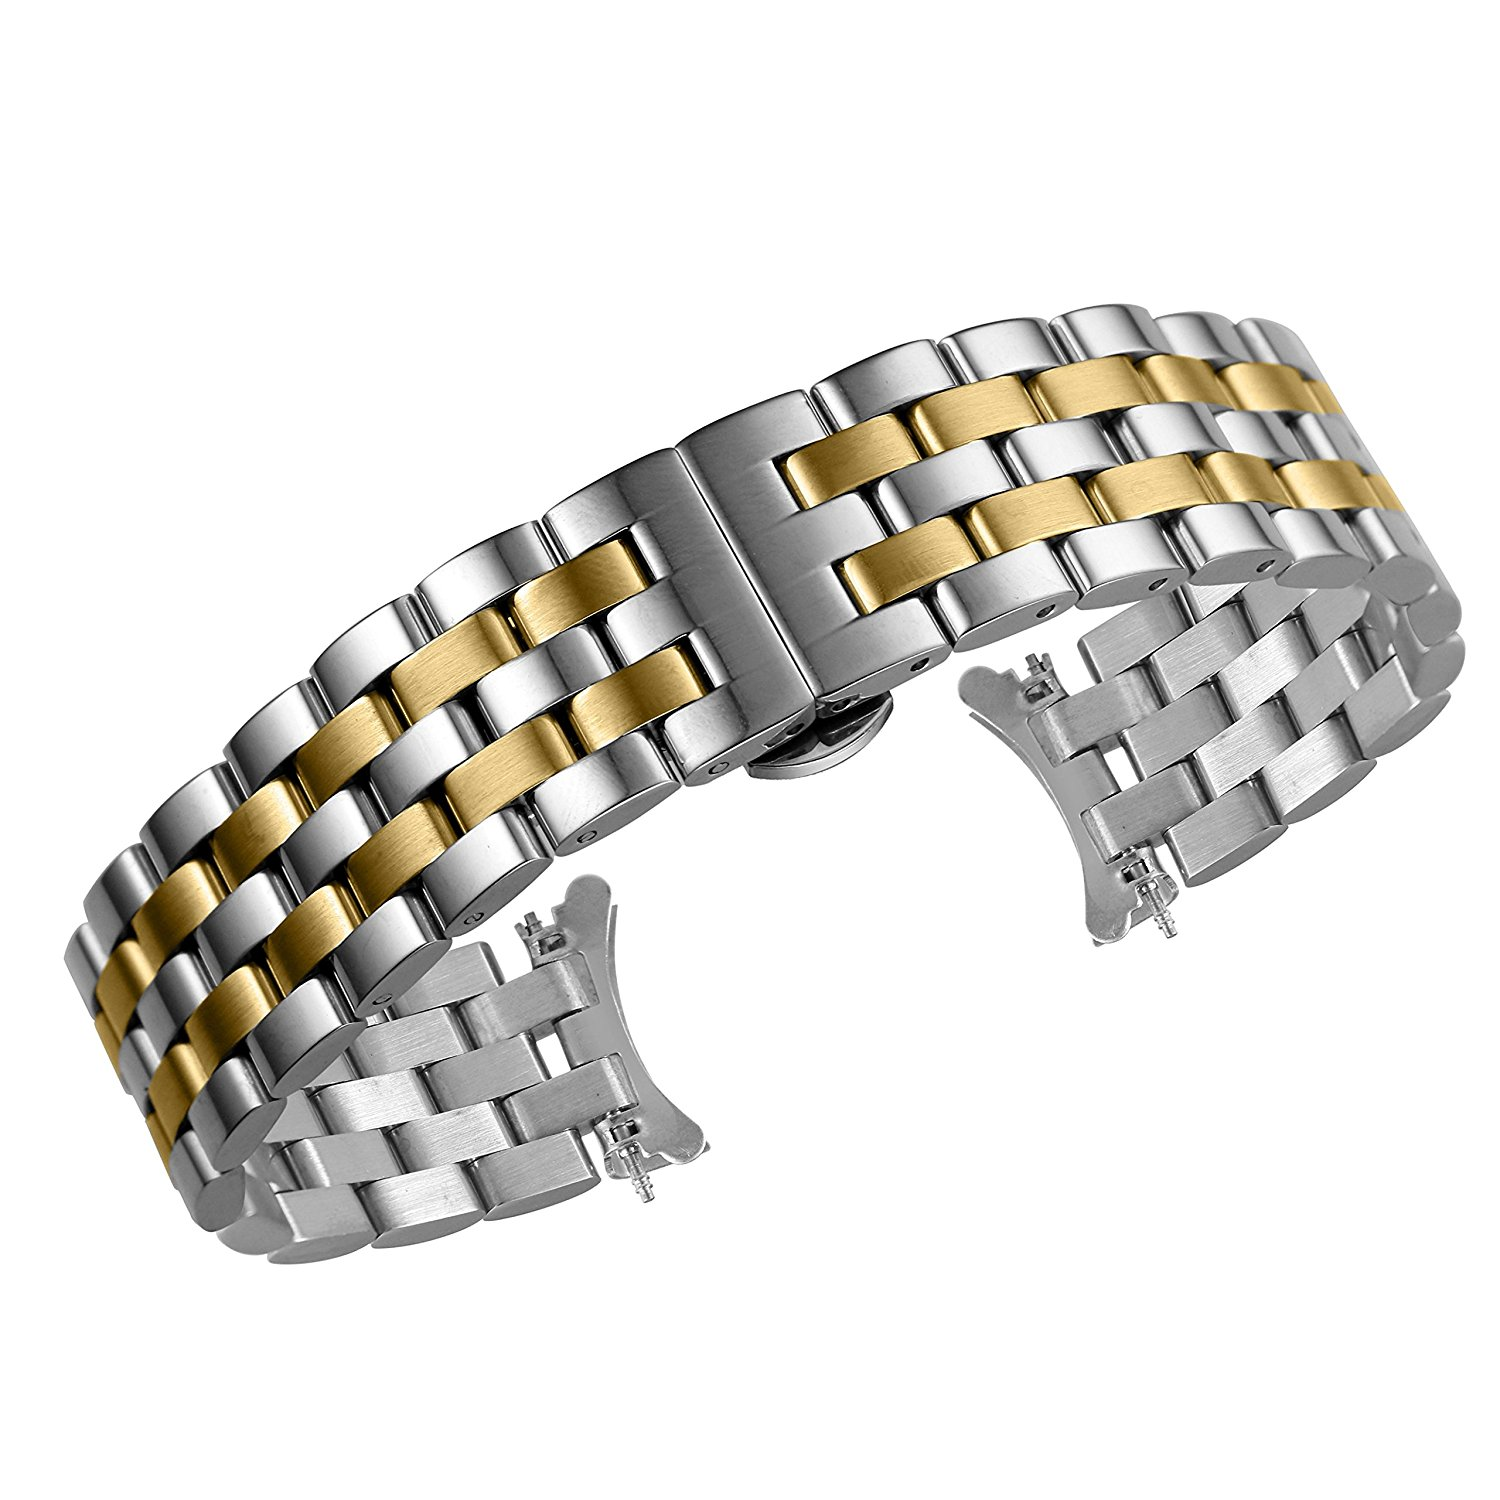 SUKEQ For Fitbit Alta HR and Alta Bands Metal Bracelet Jewelry Replacement Strap Bead Wristband Elastic Stretch Bracelet Accessories